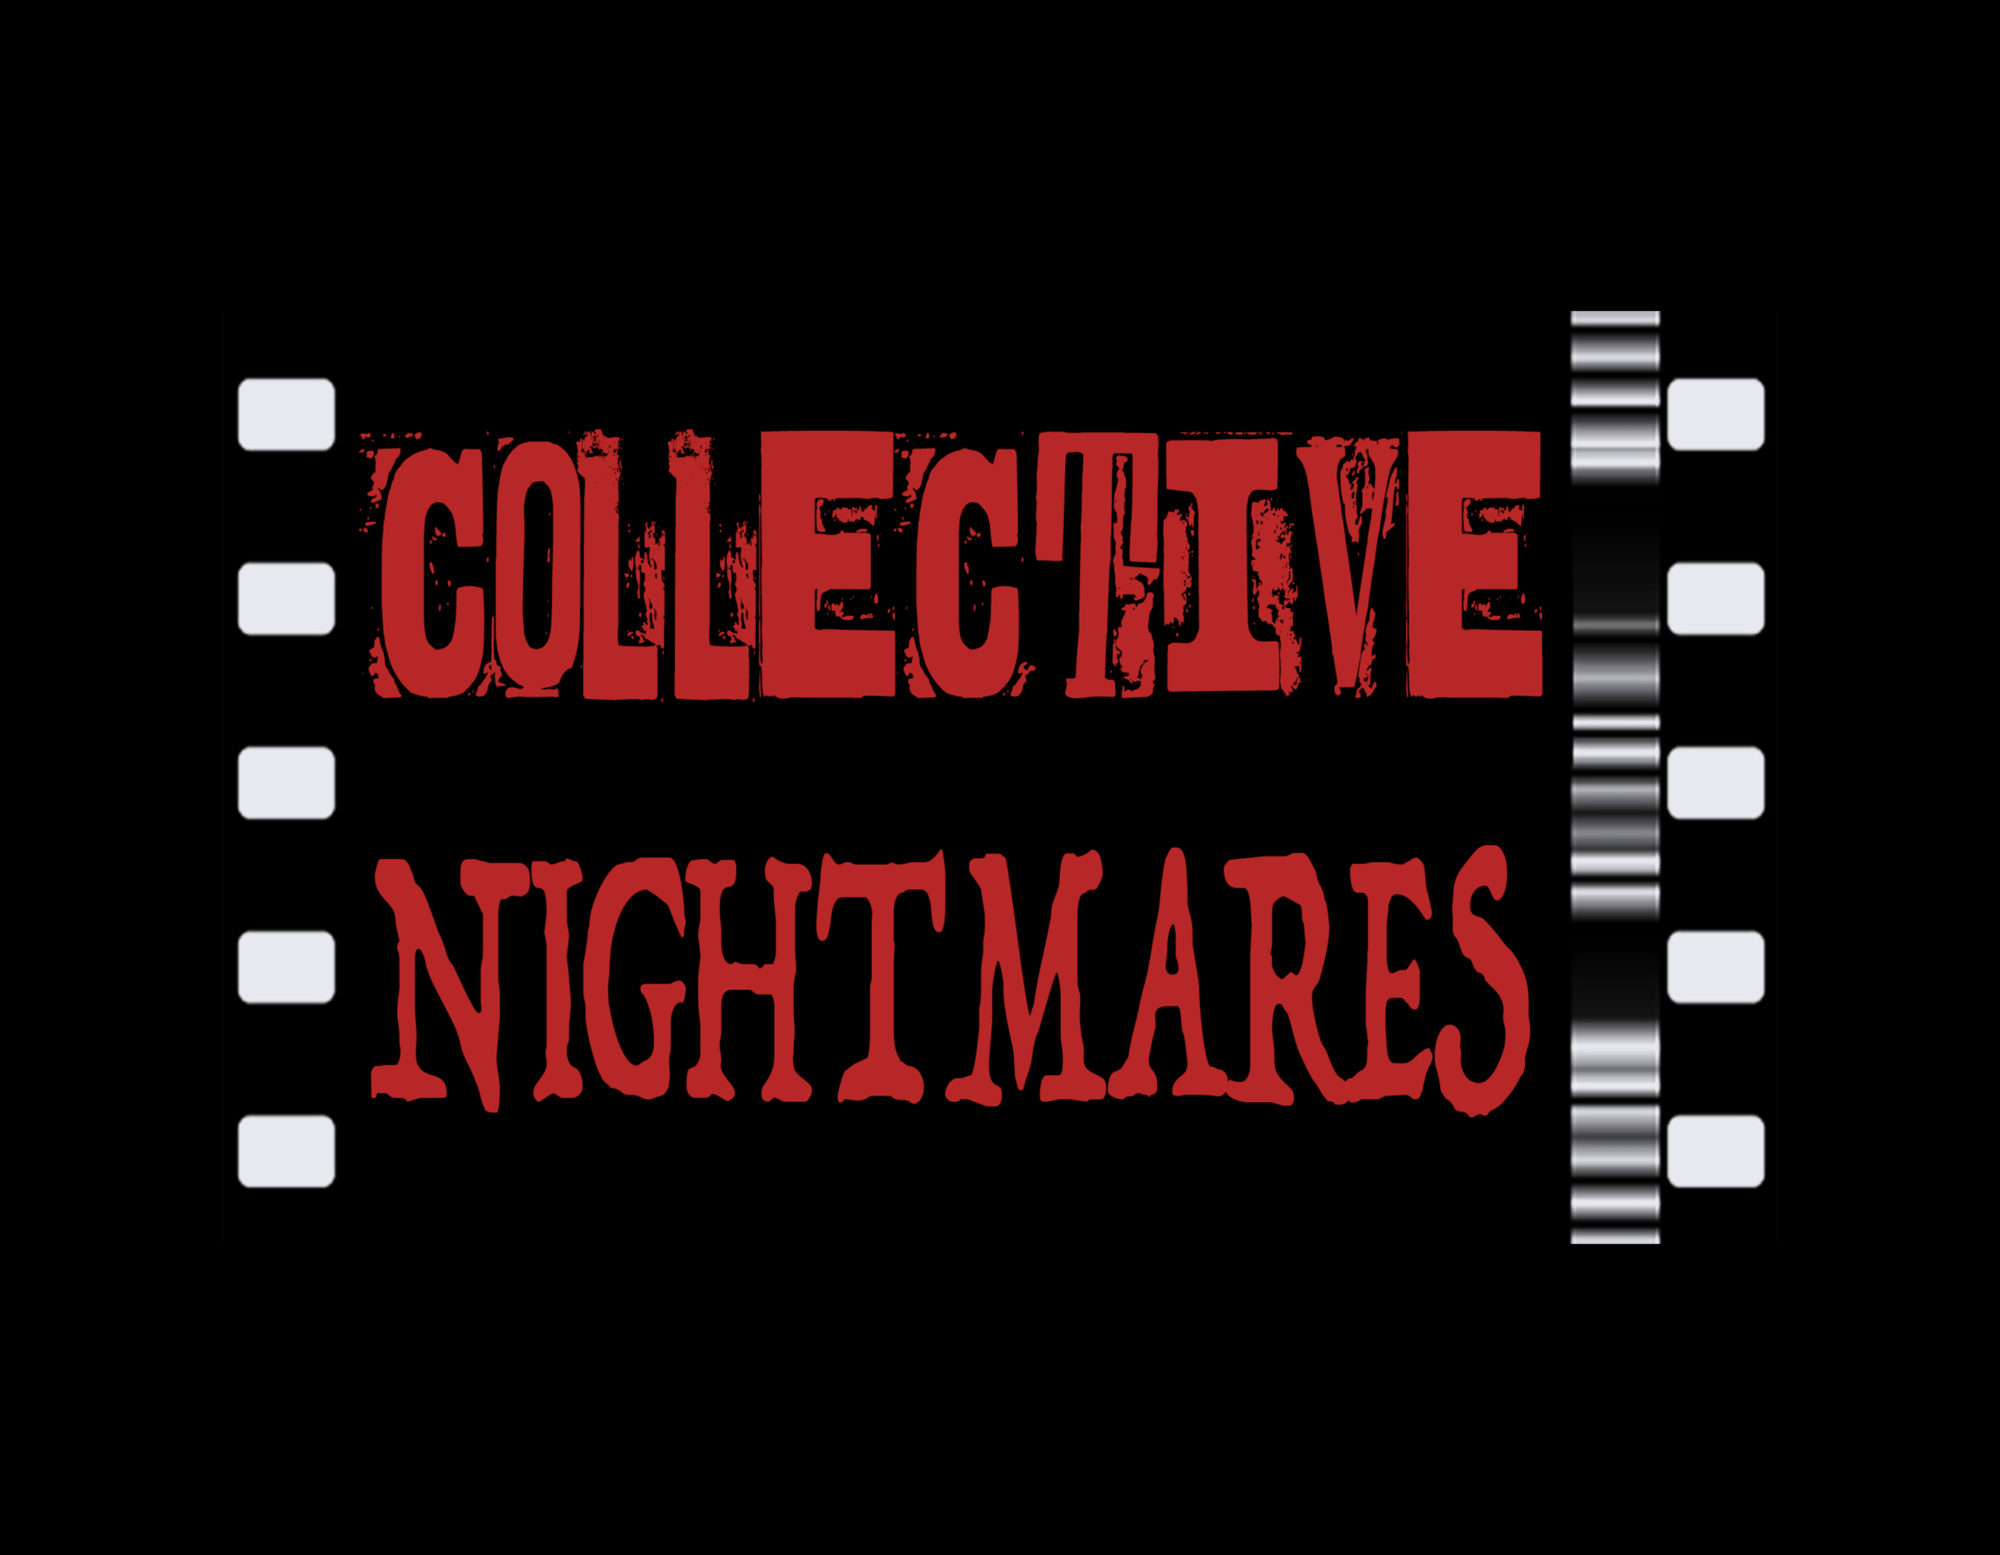 Collective Nightmares